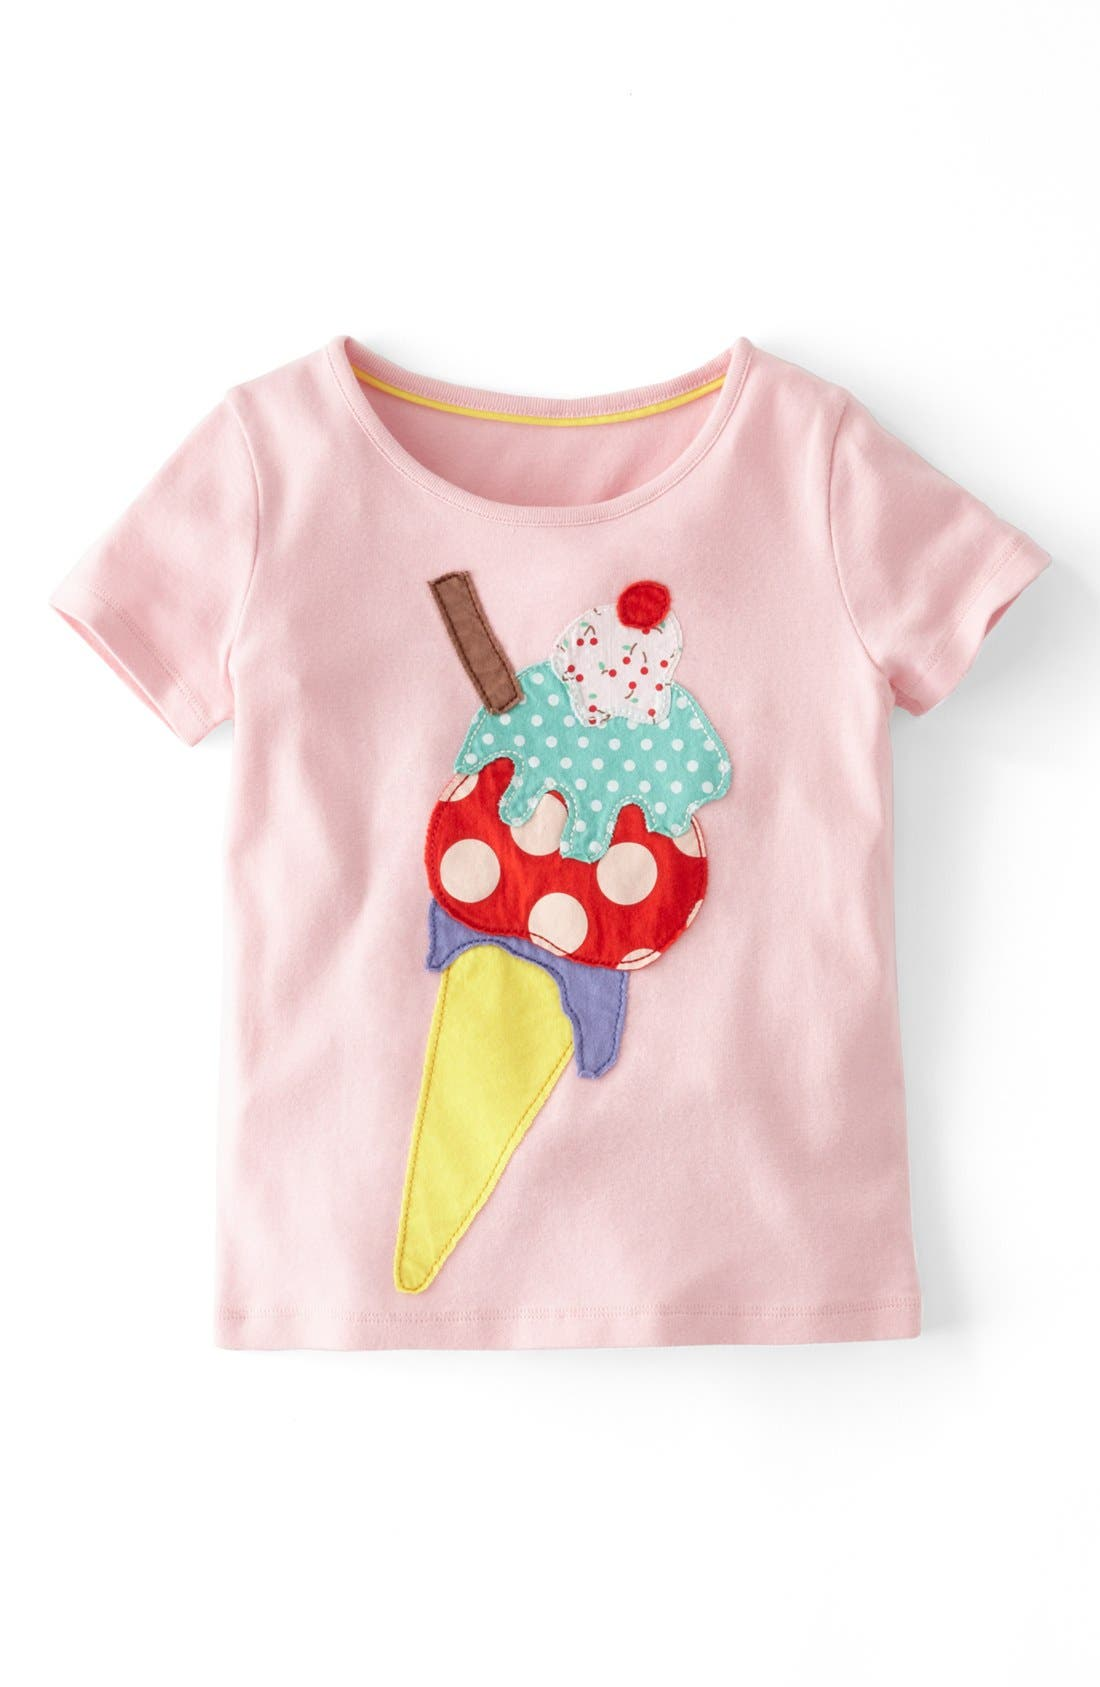 Alternate Image 1 Selected - Mini Boden 'Big Appliqué' Tee (Little Girls & Big Girls)